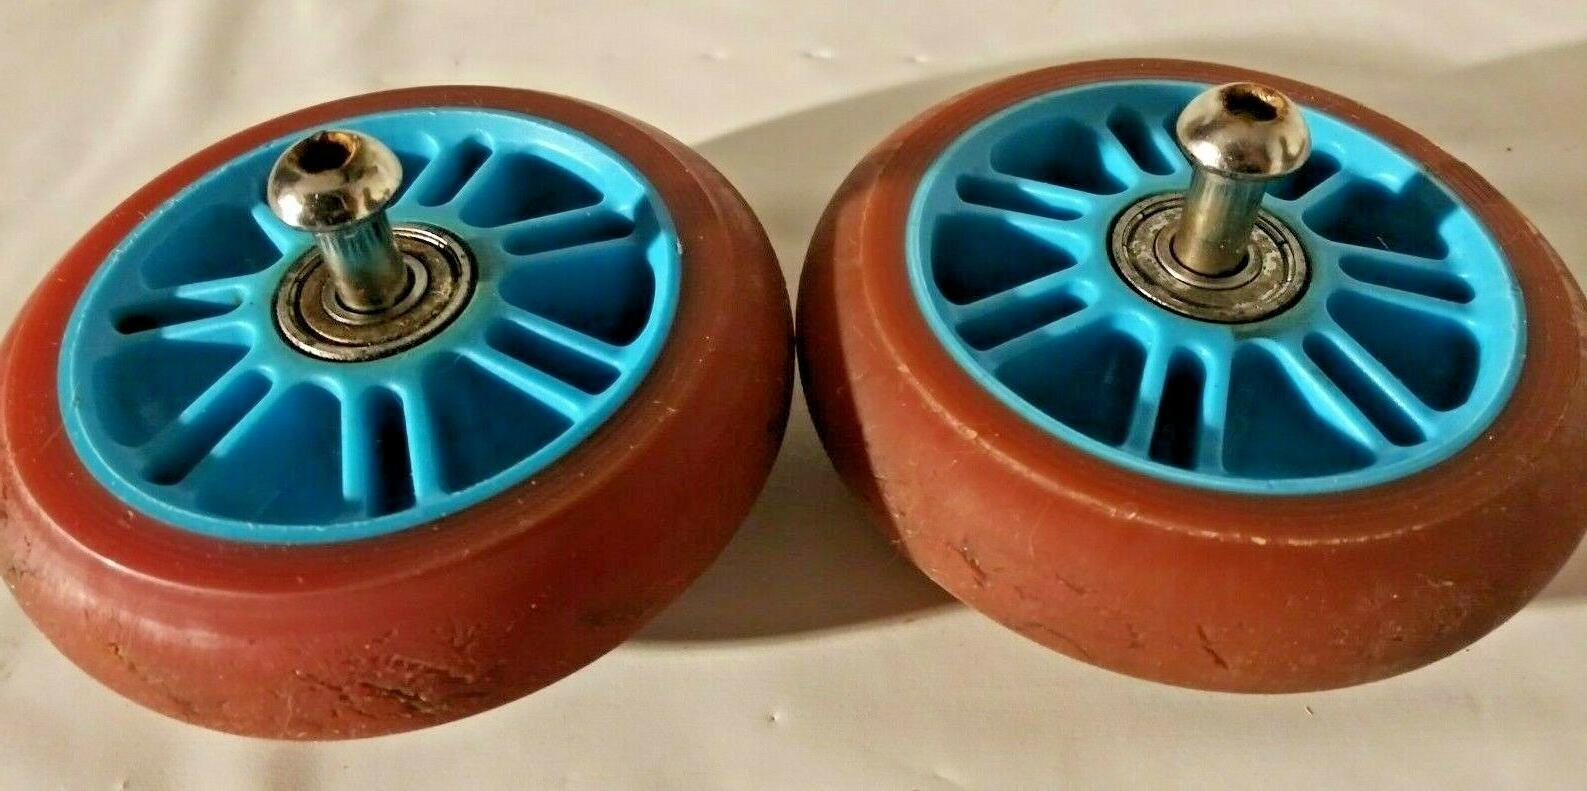 scooter replacement wheels set with bearings